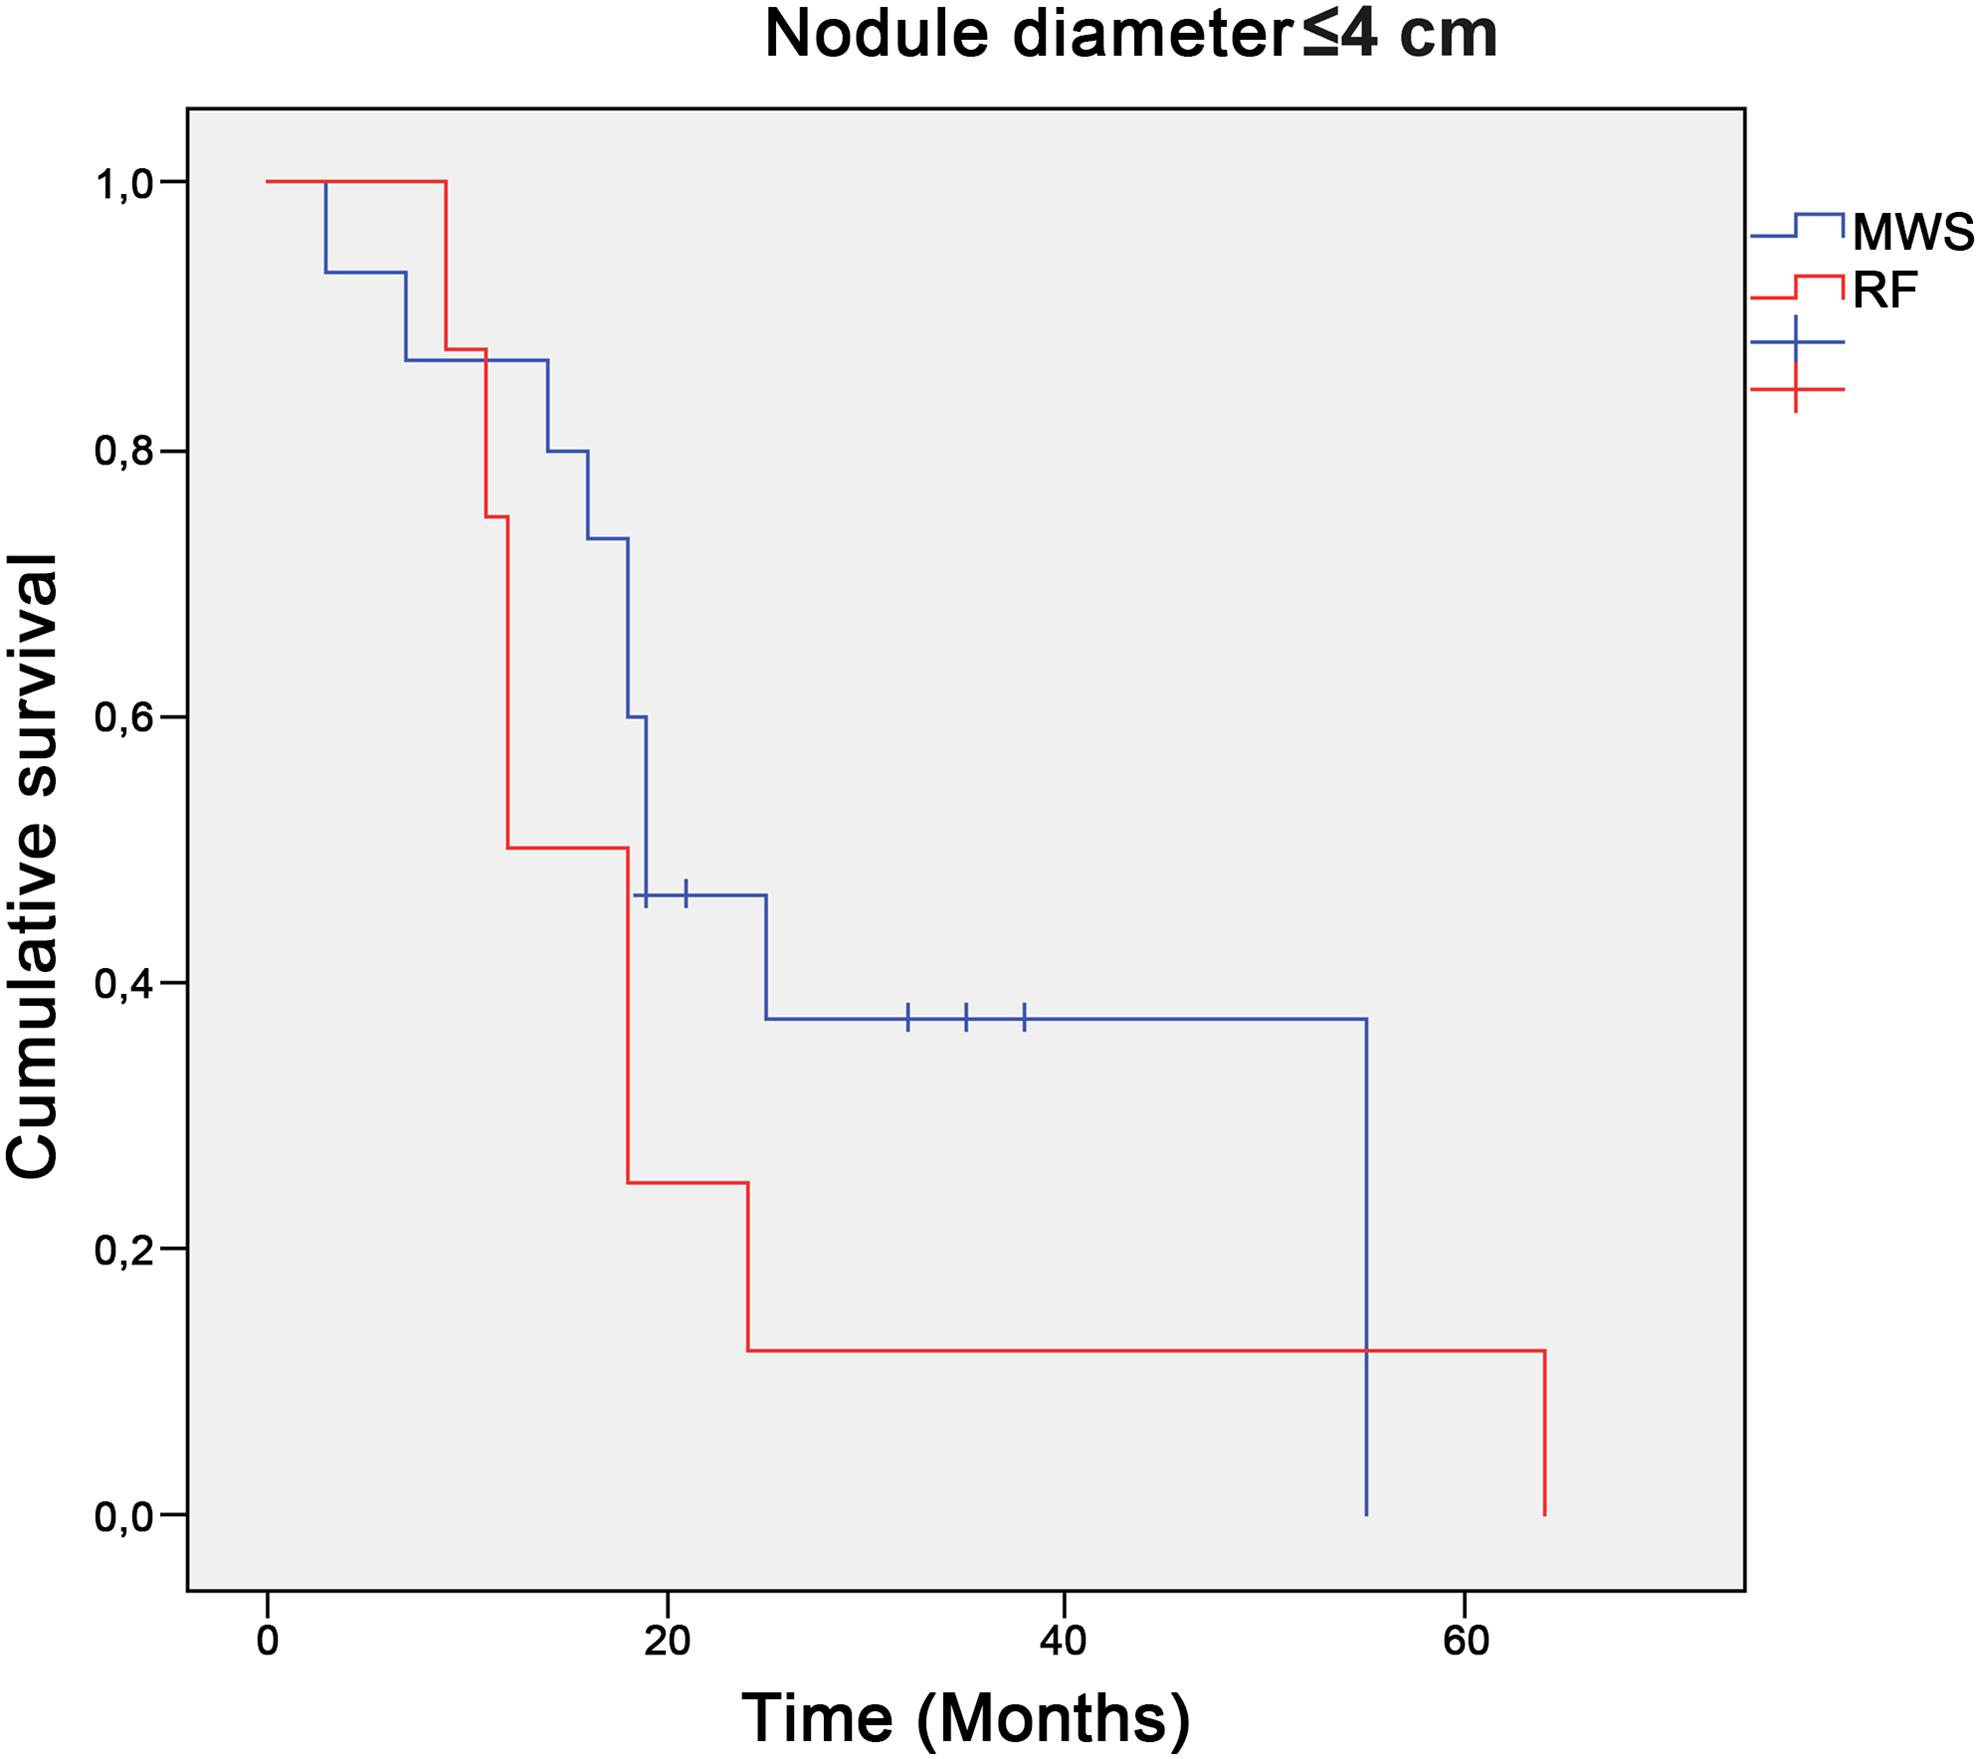 Overall survival of patients with nodules ≤4 cm treated with MWSA vs. patients treated with RFA.